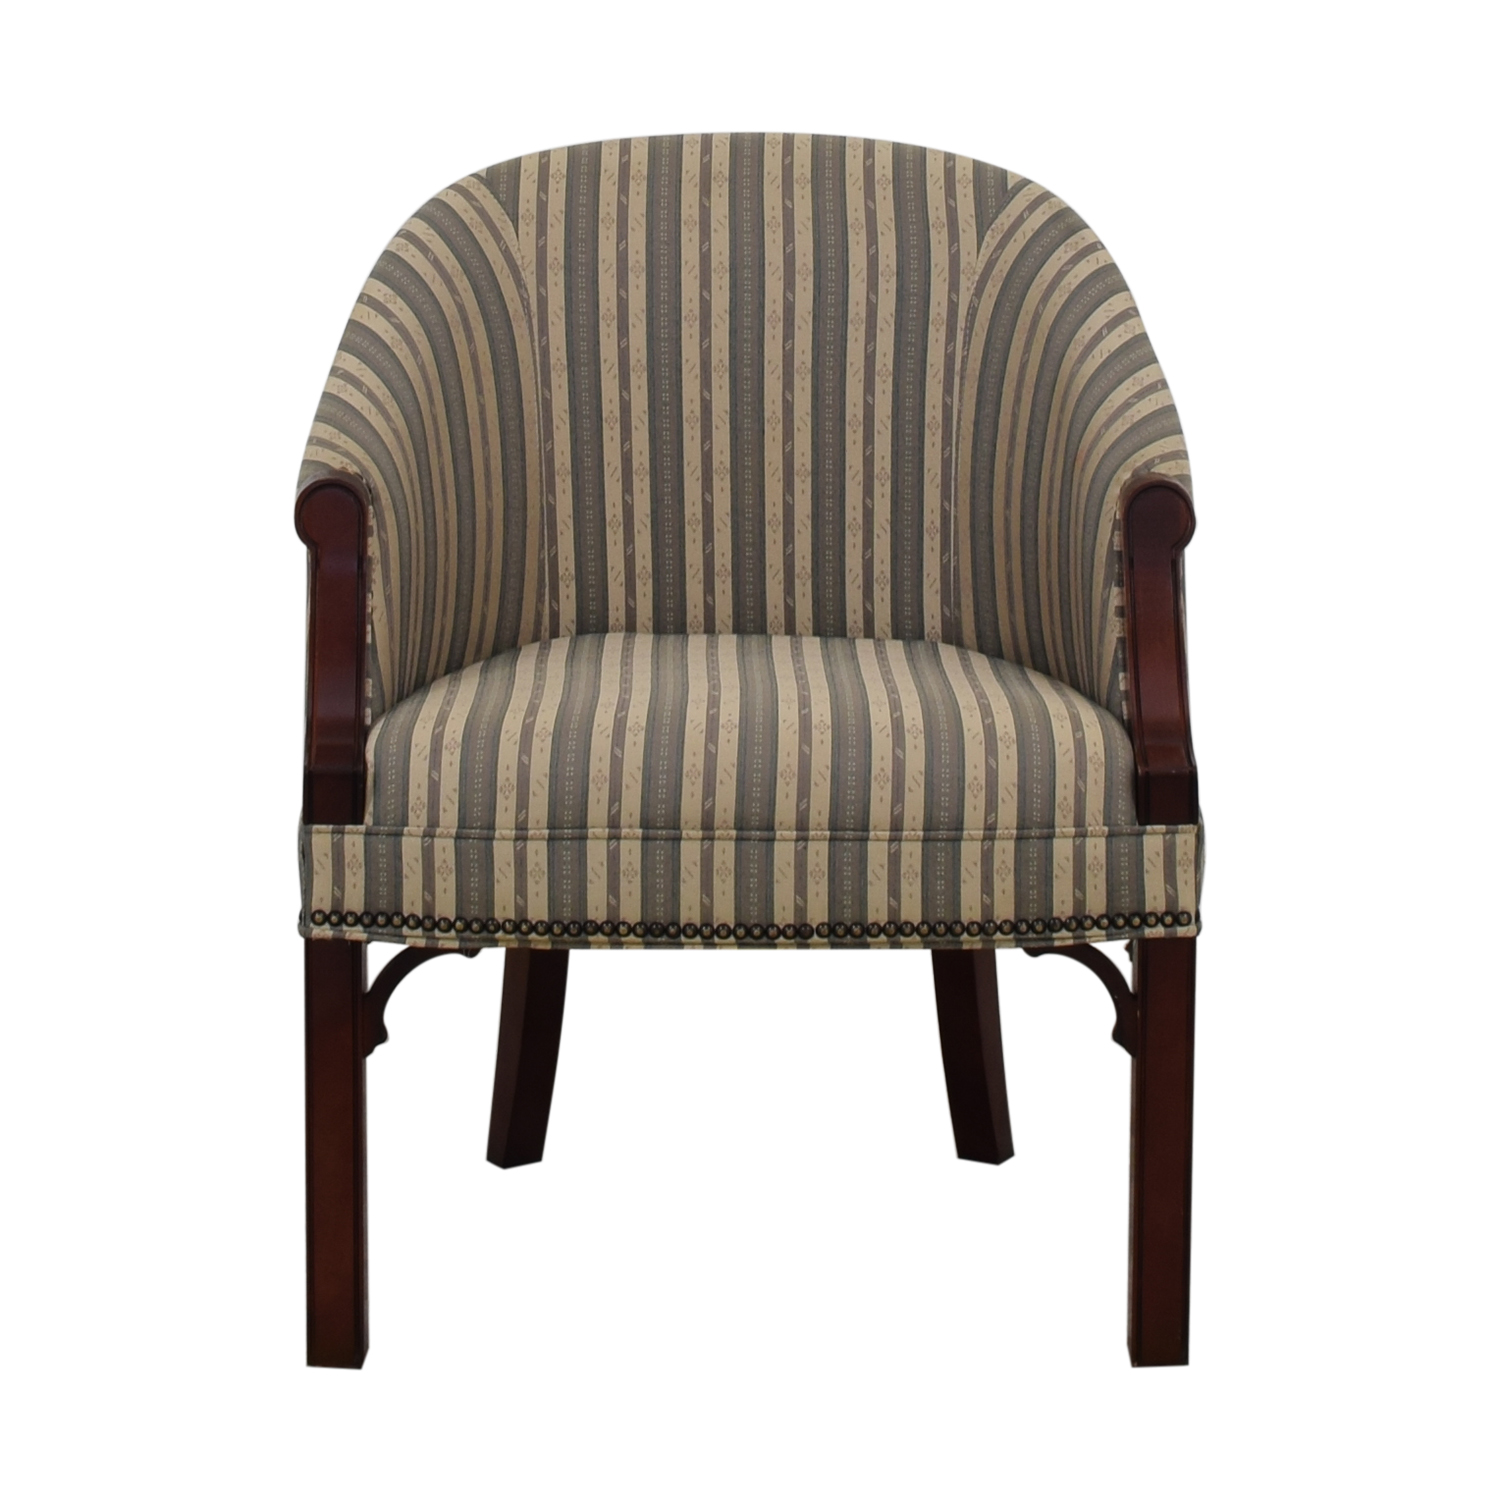 Kimball Independence Newcastle Striped Chair Kimball